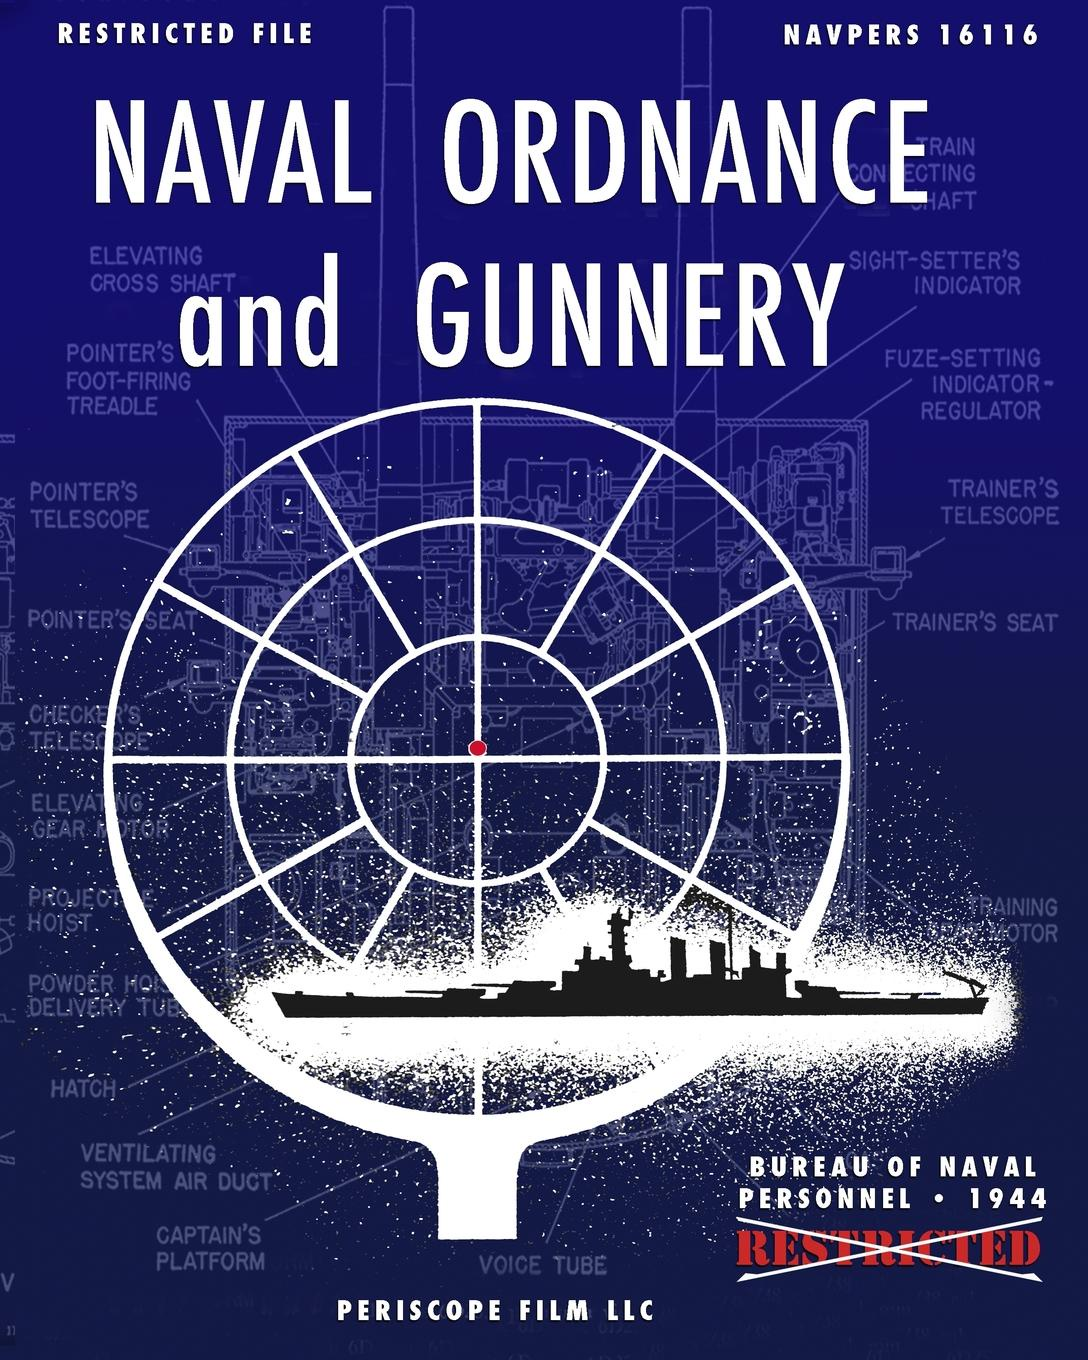 Bureau of Naval Personnel Naval Ordnance and Gunnery